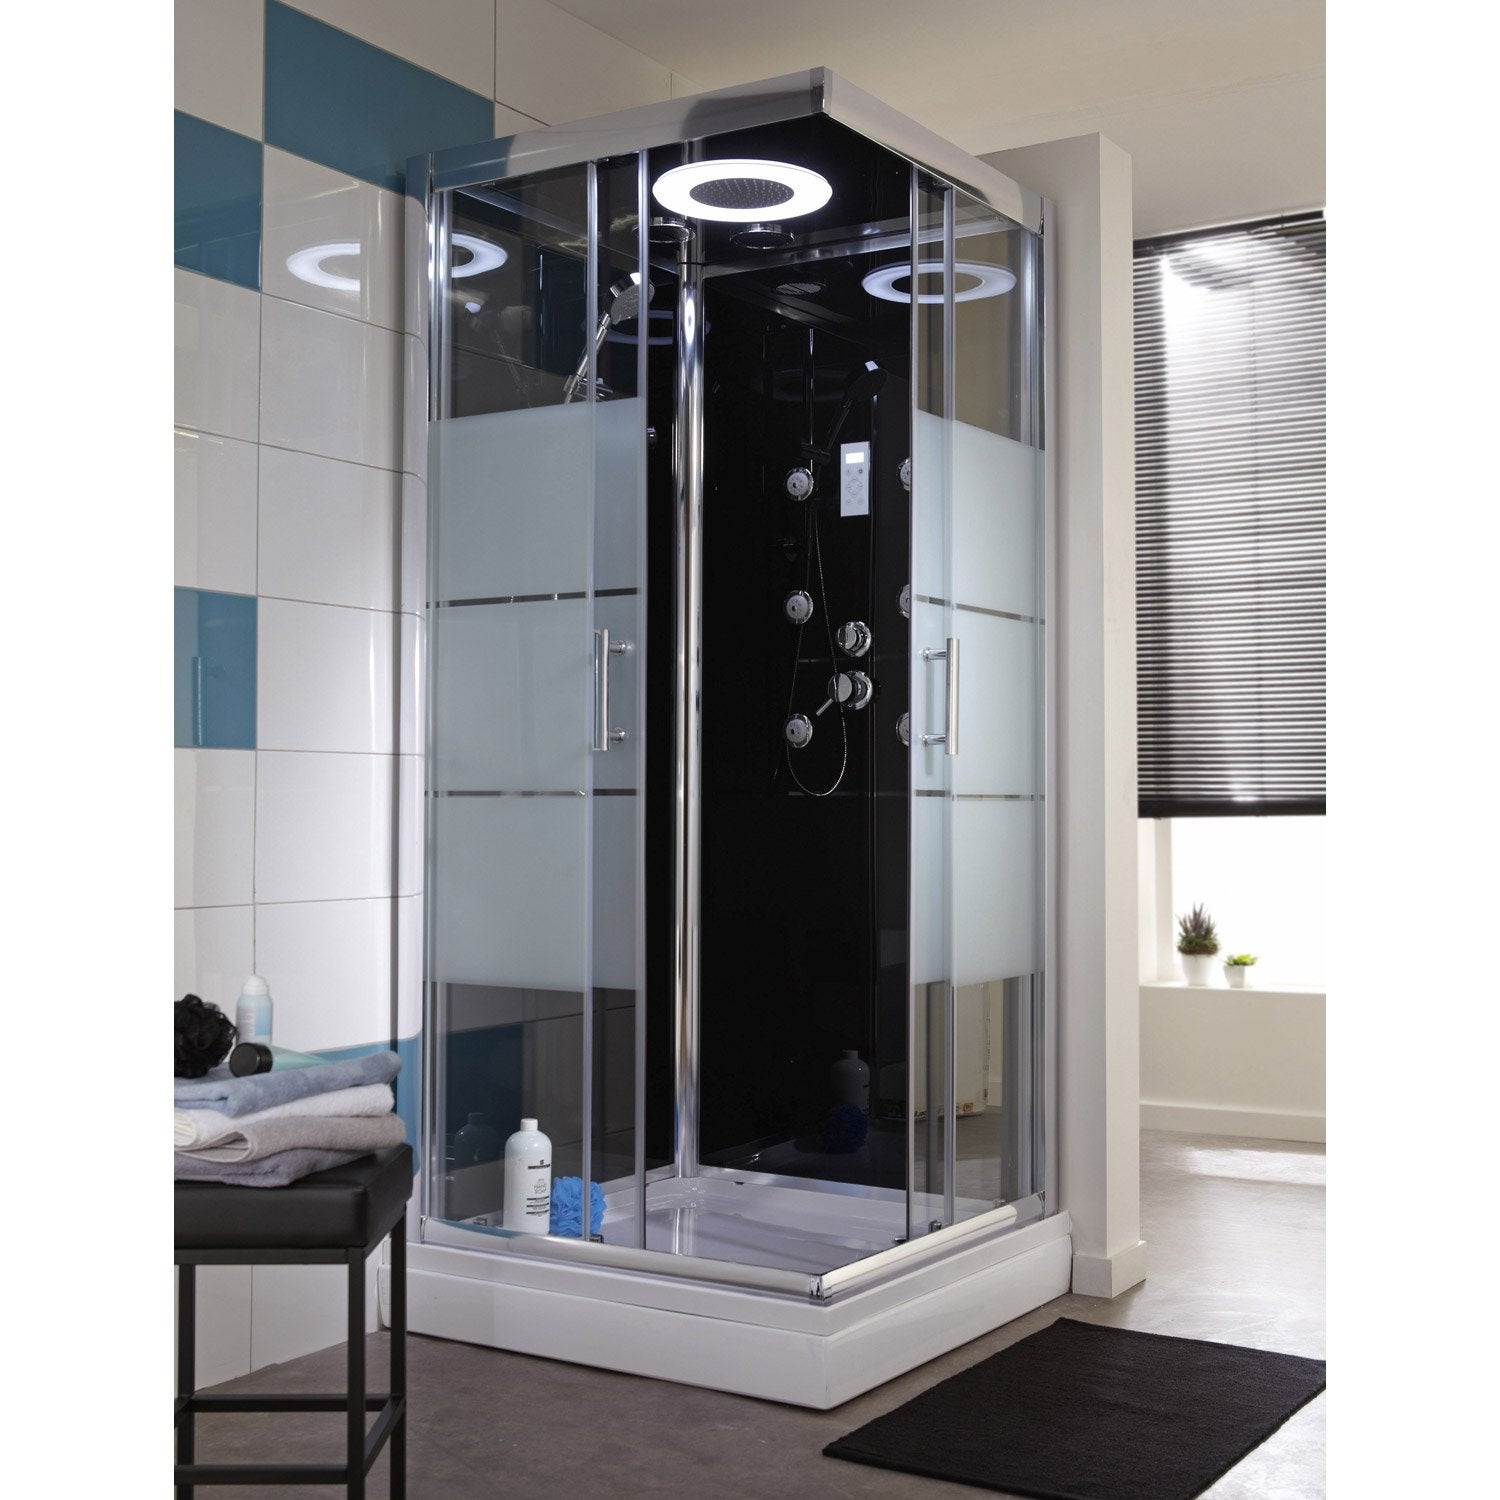 cabine de douche 80x80 pas cher avec leroy merlin brico. Black Bedroom Furniture Sets. Home Design Ideas